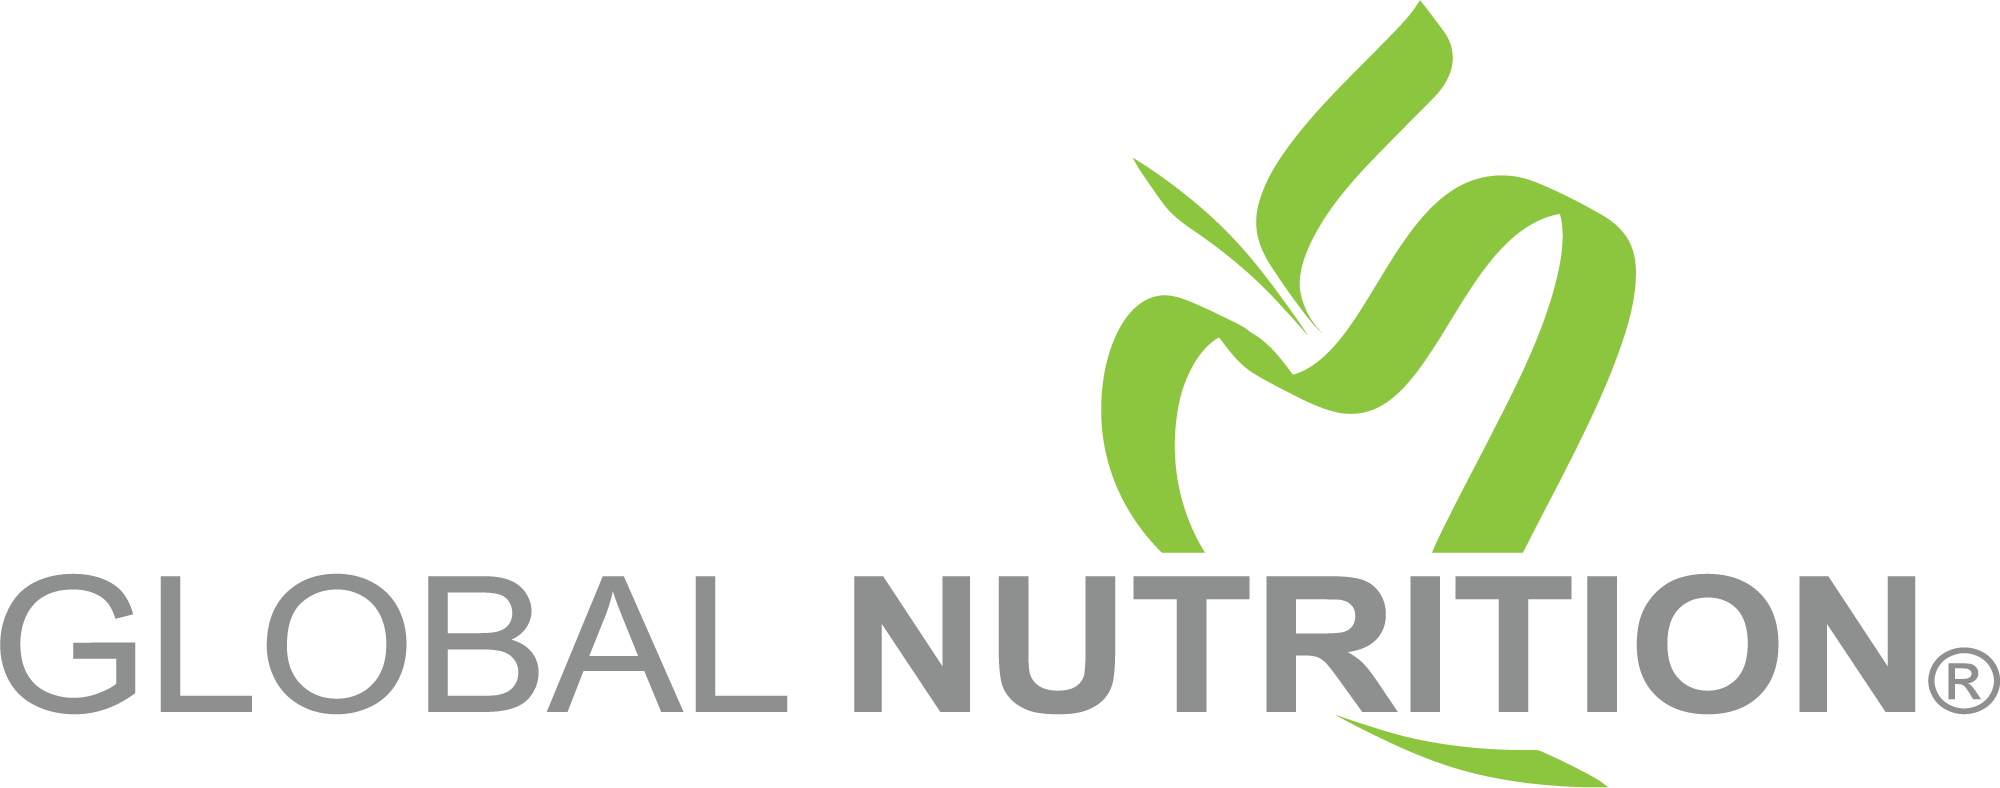 Global Nutrition Shop